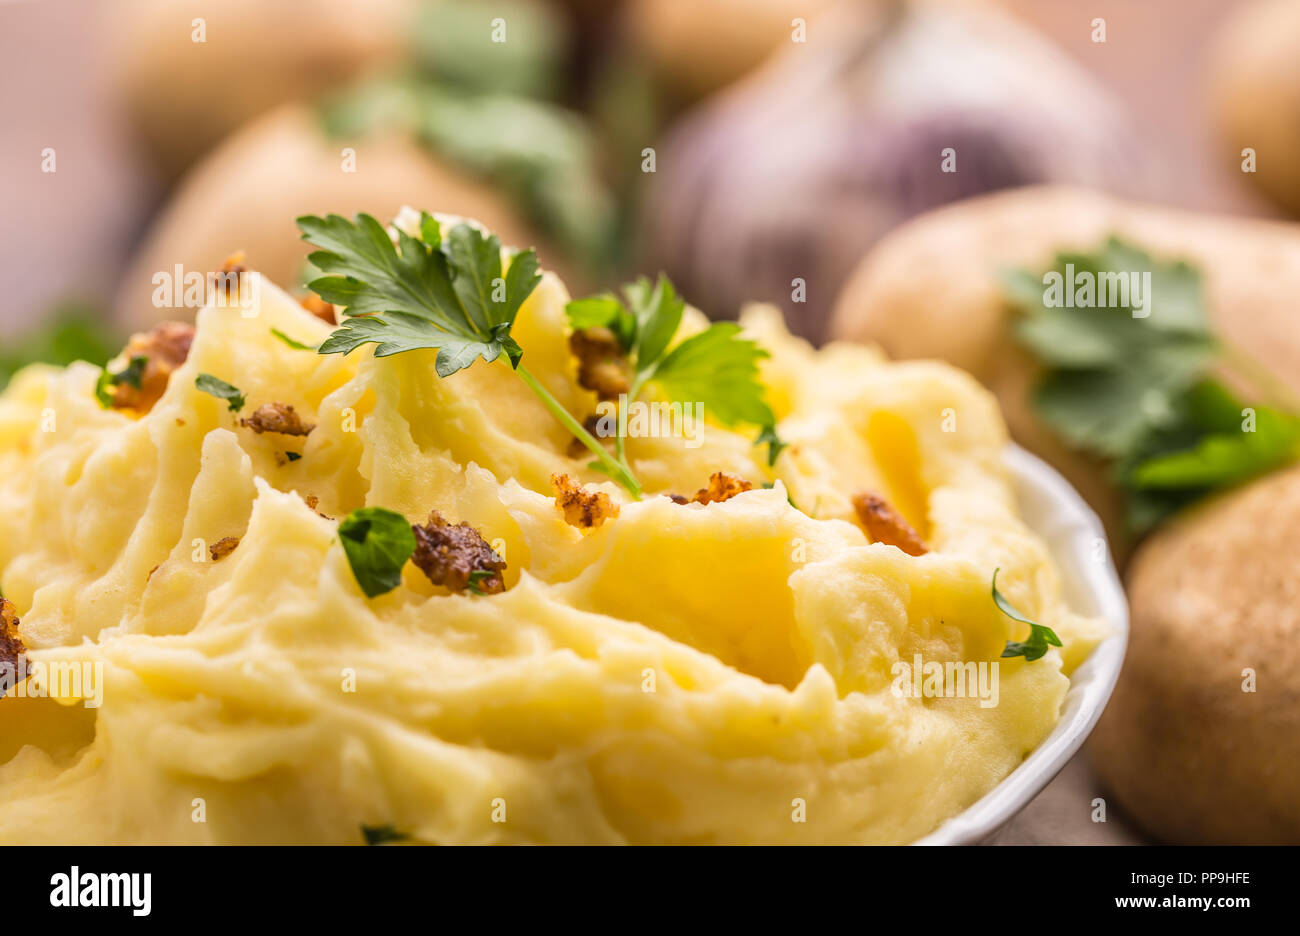 Mashed potatoes in bowl decorated parsley herbs and roasted bacon pieces. - Stock Image